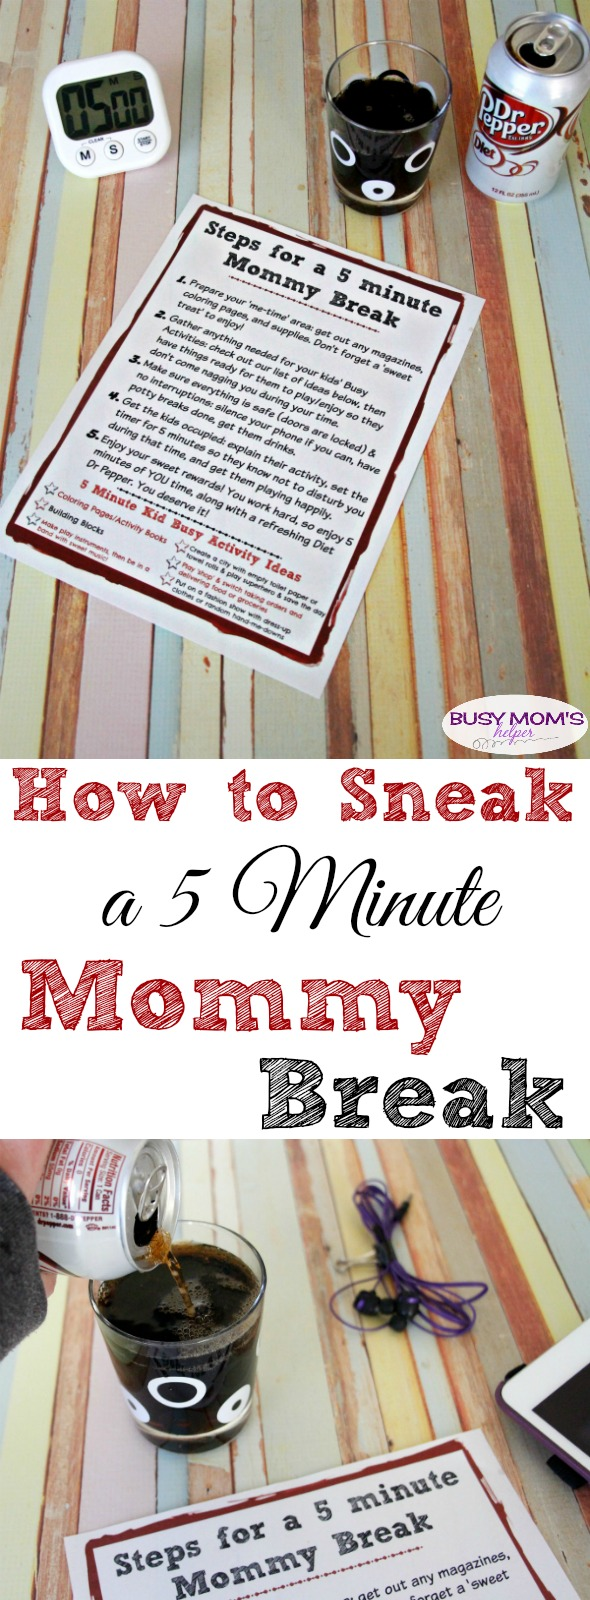 How to sneak in a 5 minute mommy break - with free printable steps, plus ideas to keep the kids busy! #CollectiveBias